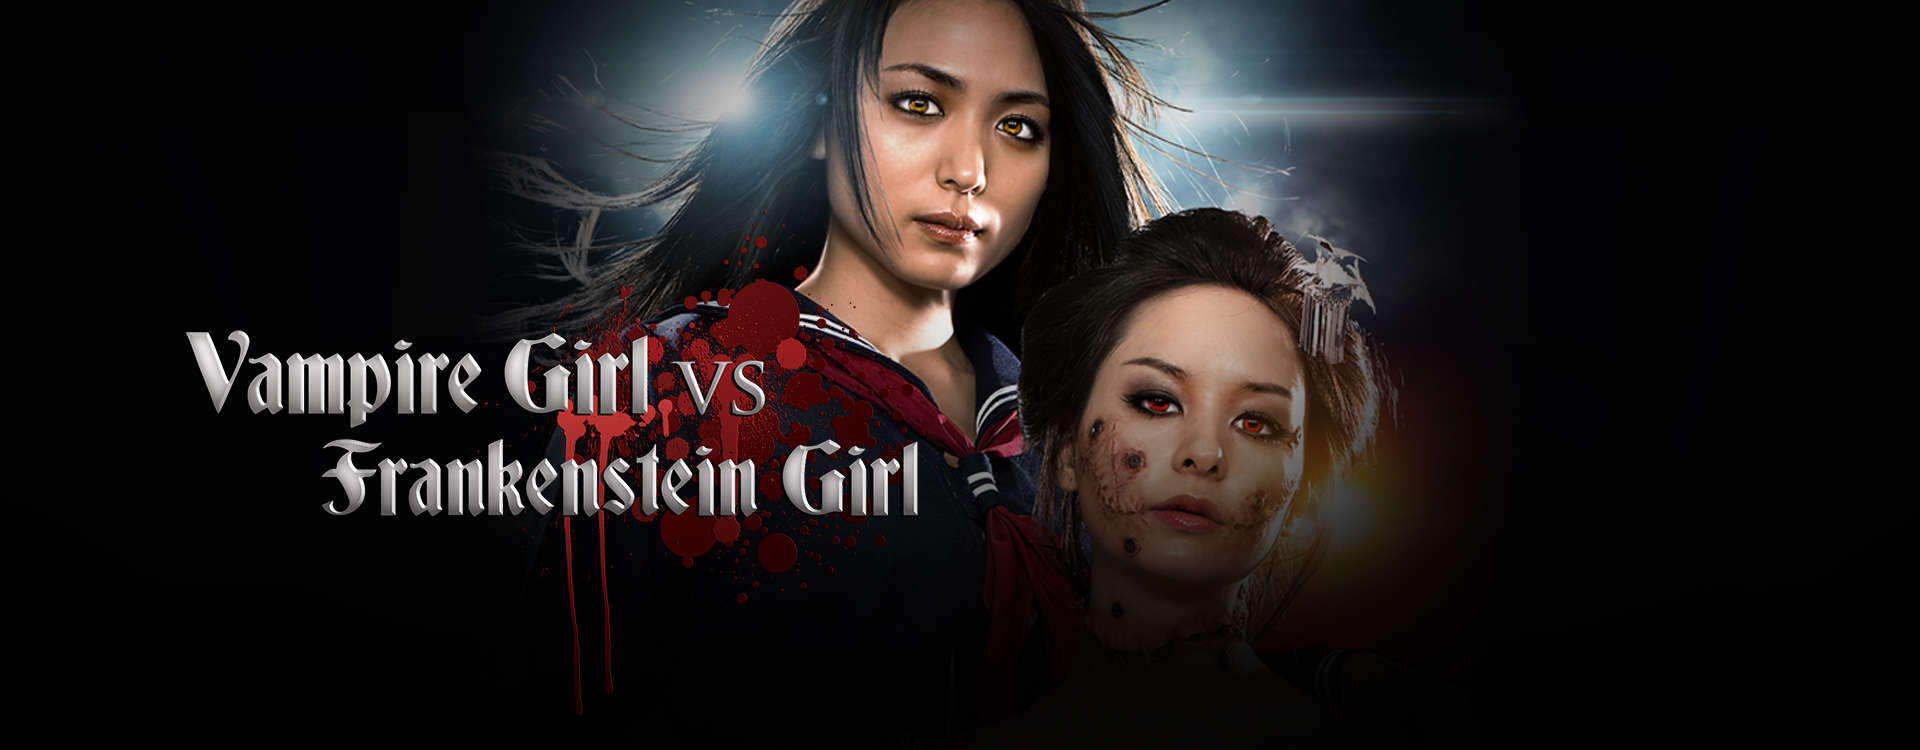 Vampire Girl Vs. Frankenstein Girl Stream & Watch Vam...